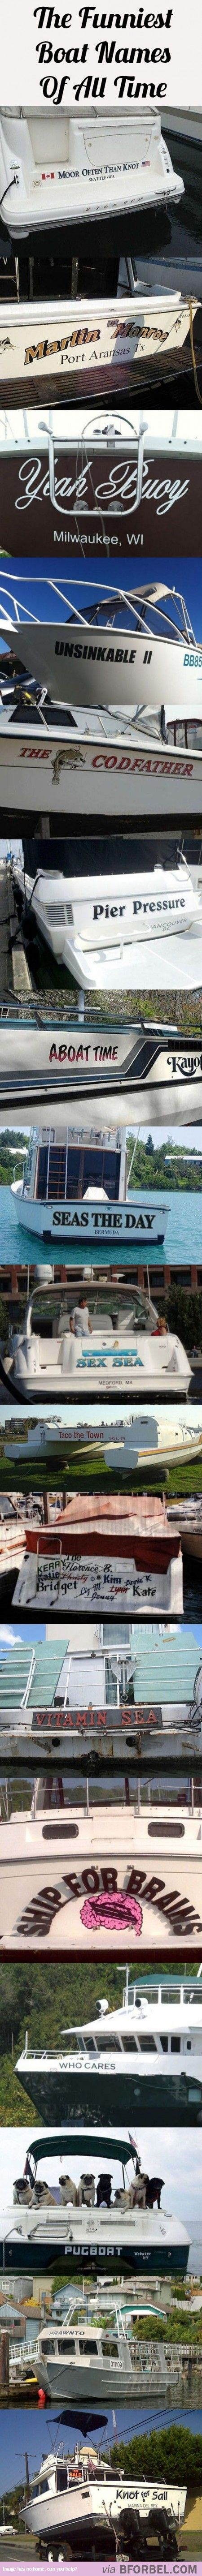 17 Of The Funniest Boat Names…